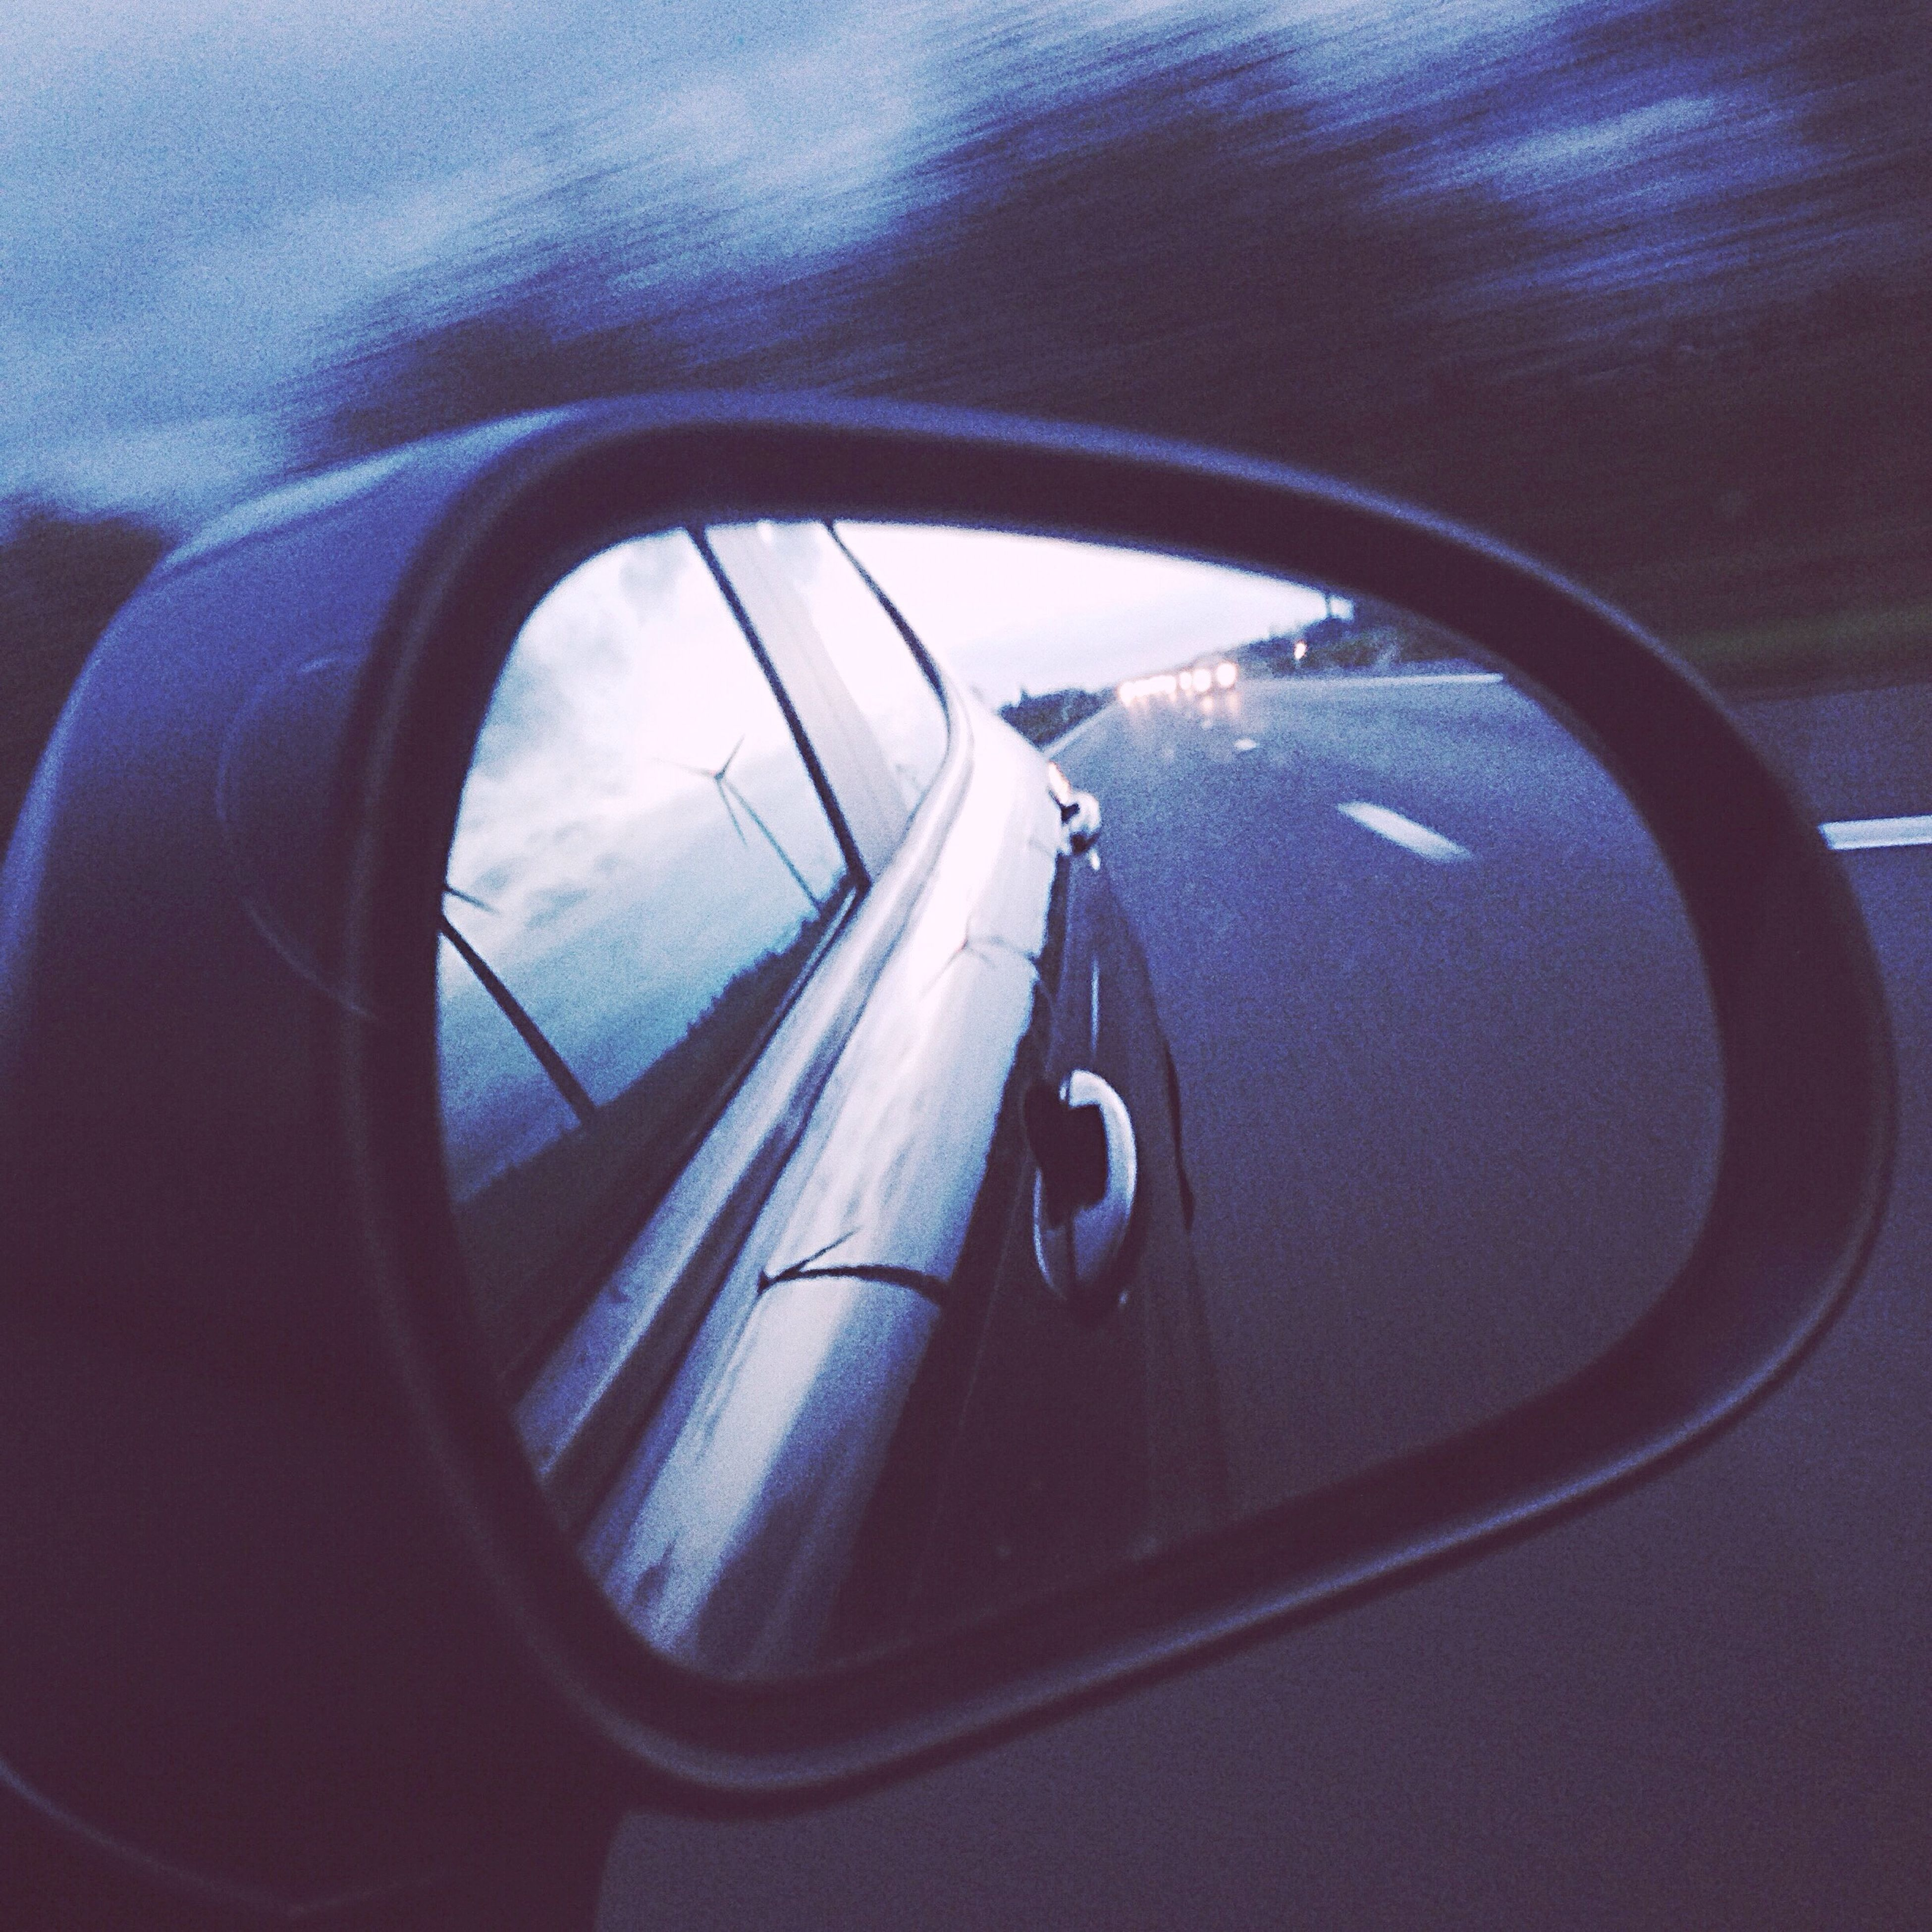 transportation, mode of transport, land vehicle, car, vehicle interior, travel, side-view mirror, reflection, on the move, part of, journey, car interior, cropped, road, sky, glass - material, windshield, vehicle part, transparent, day